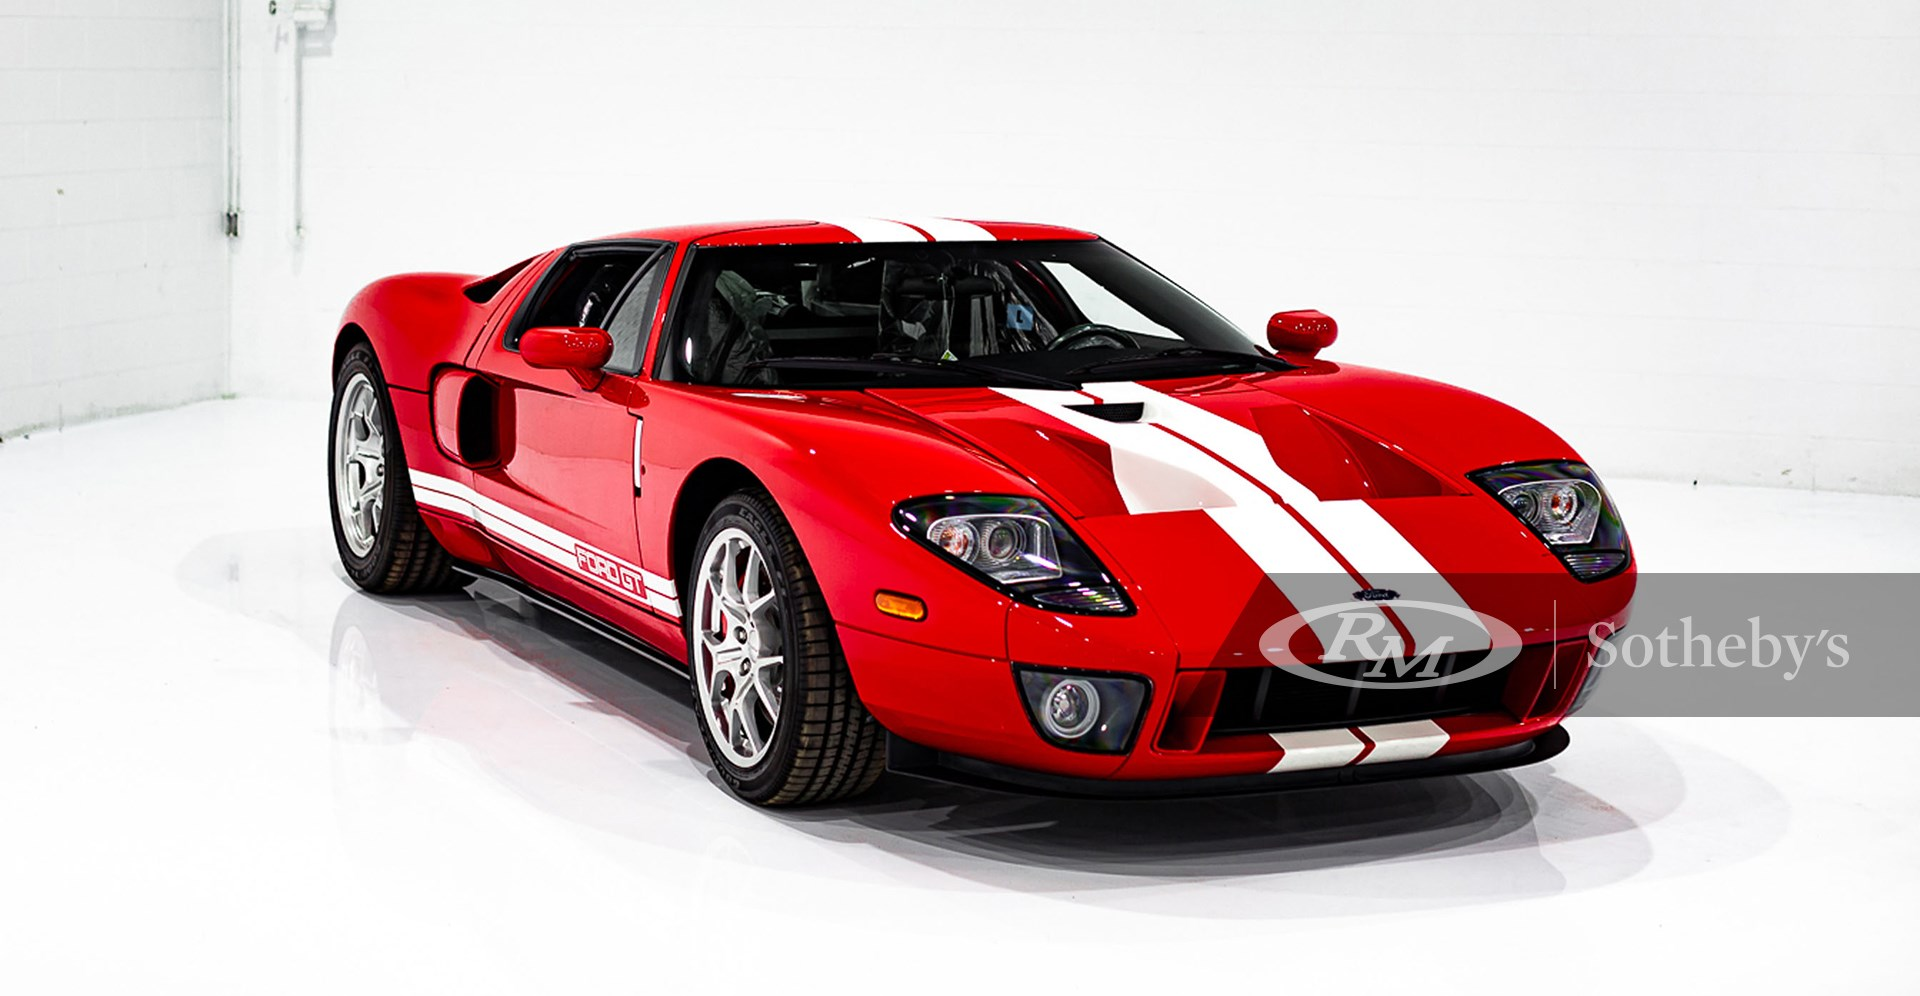 2006 Ford GT available at RM Sotheby's Online Only Open Roads April Auction 2021